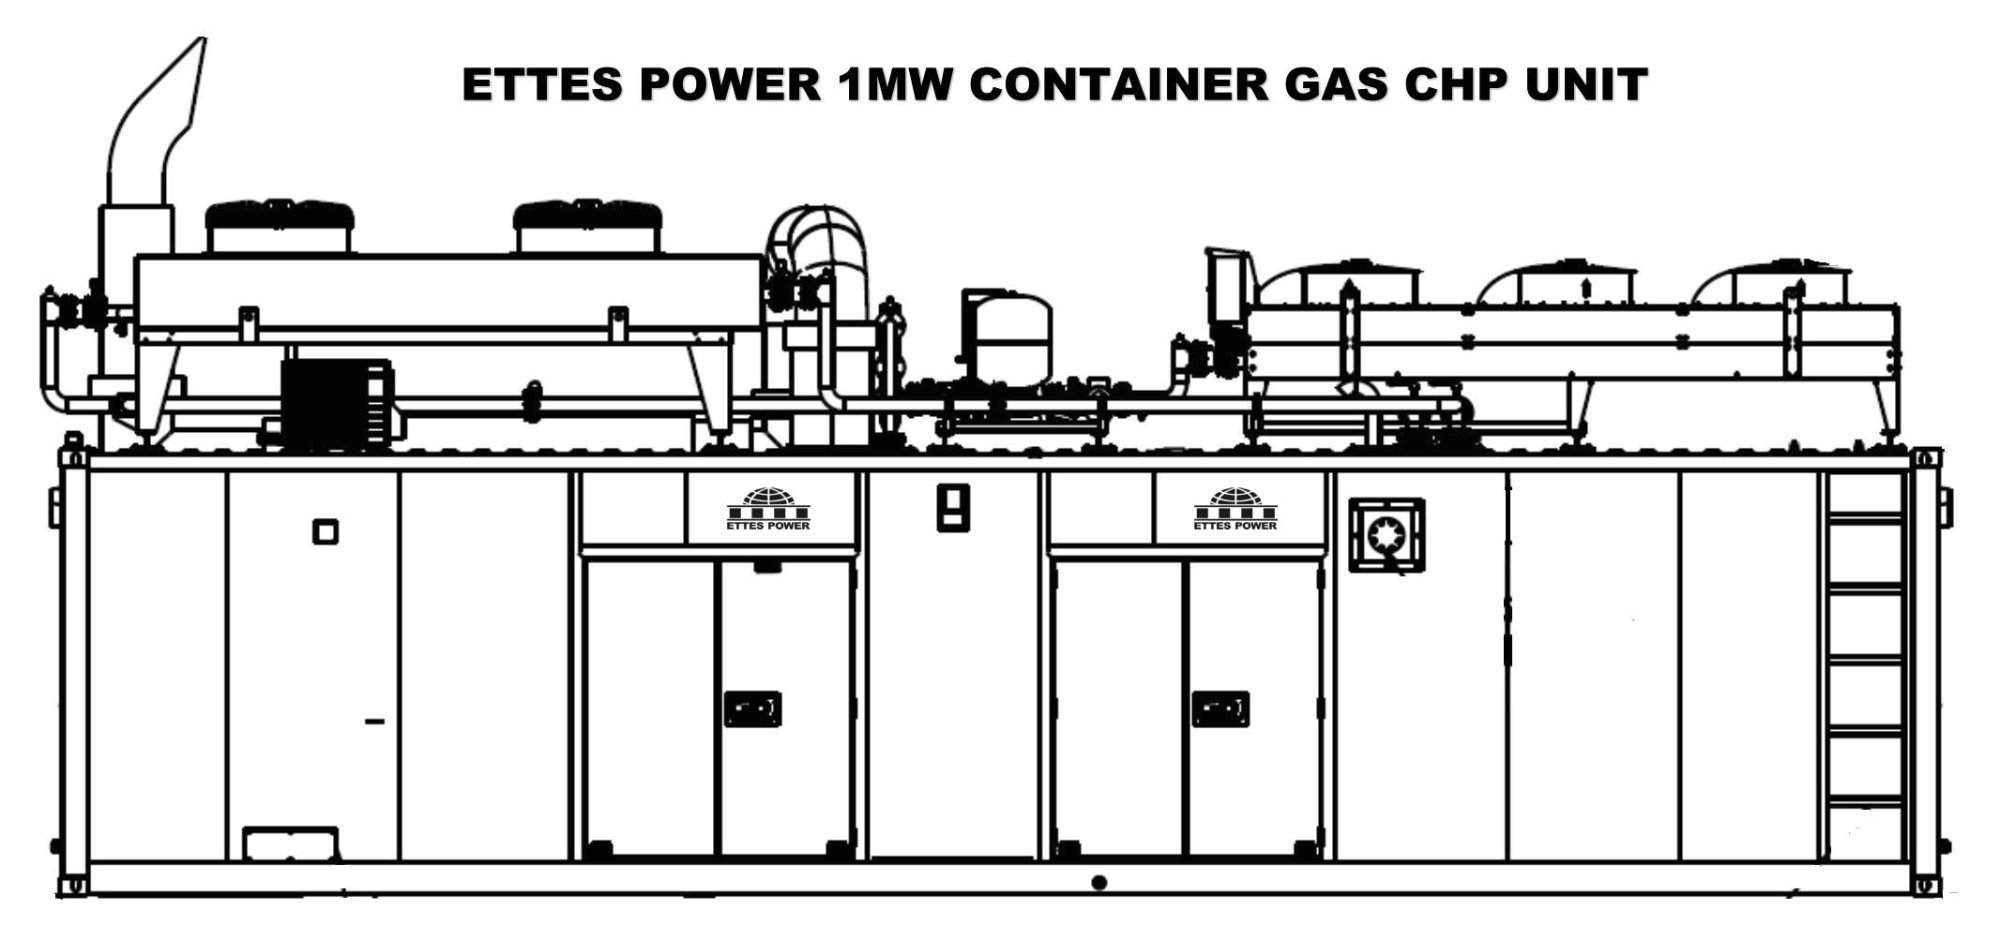 hight resolution of outline drawing of ettes gas generator chp container type cooling method of table radiator